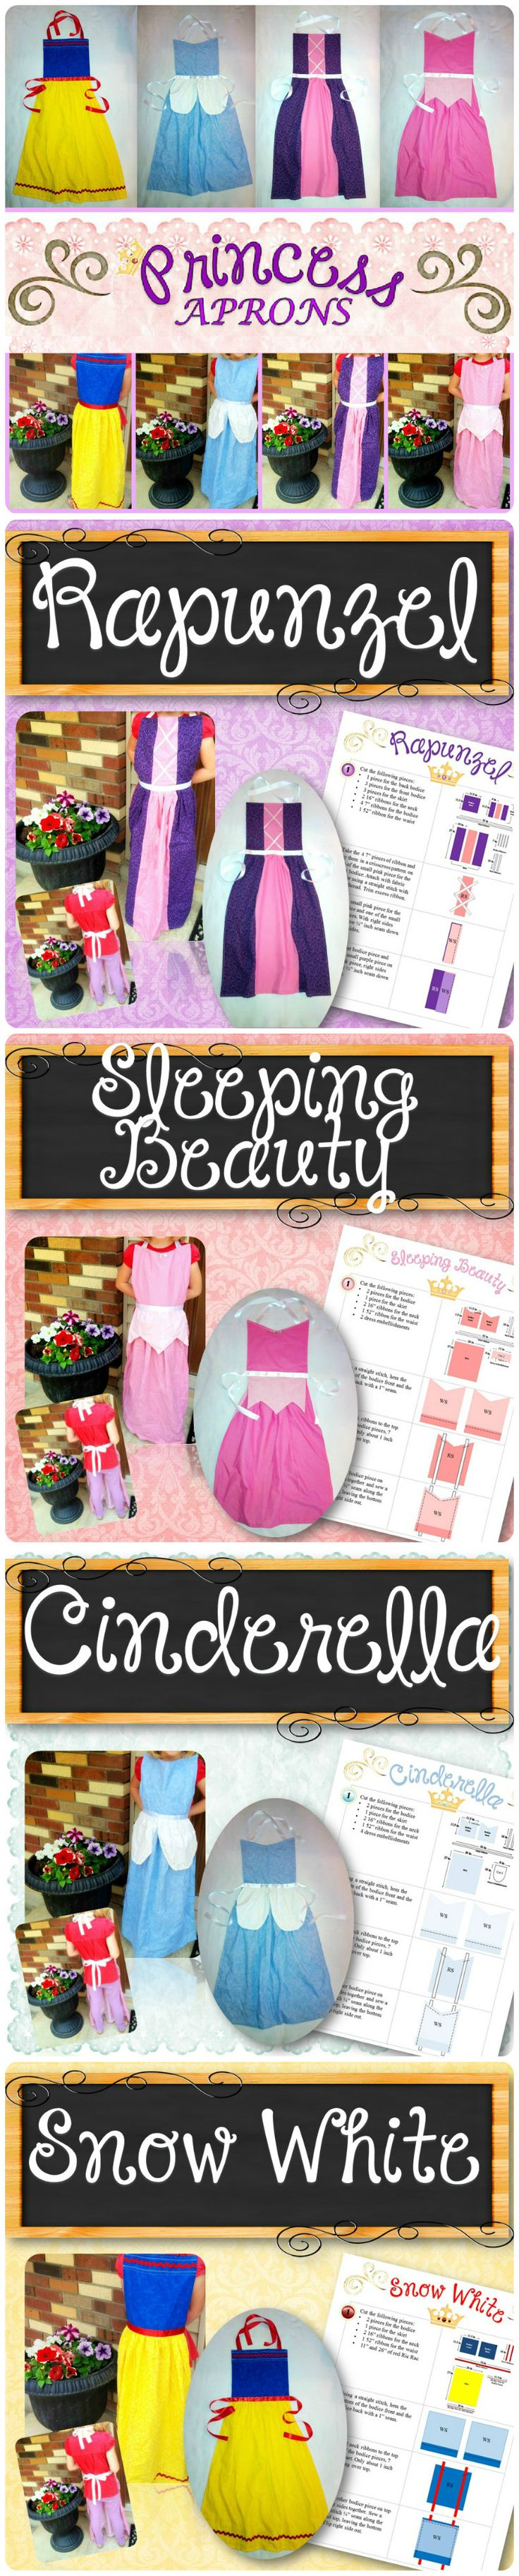 Four apron patterns for Cinderella, Sleeping Beauty, Rapunzel and Snow White. Step by step instructions and pictures are included that are simple enough for even beginners and young girls to make. The aprons will fit ages 3+ (pin/hem the bottom for younger girls) and all sizes...even adults can wear them to play with their kids and grandkids. Little girls can change princesses quickly without having to change their actual clothing and can easily share with friends. These will last for years!